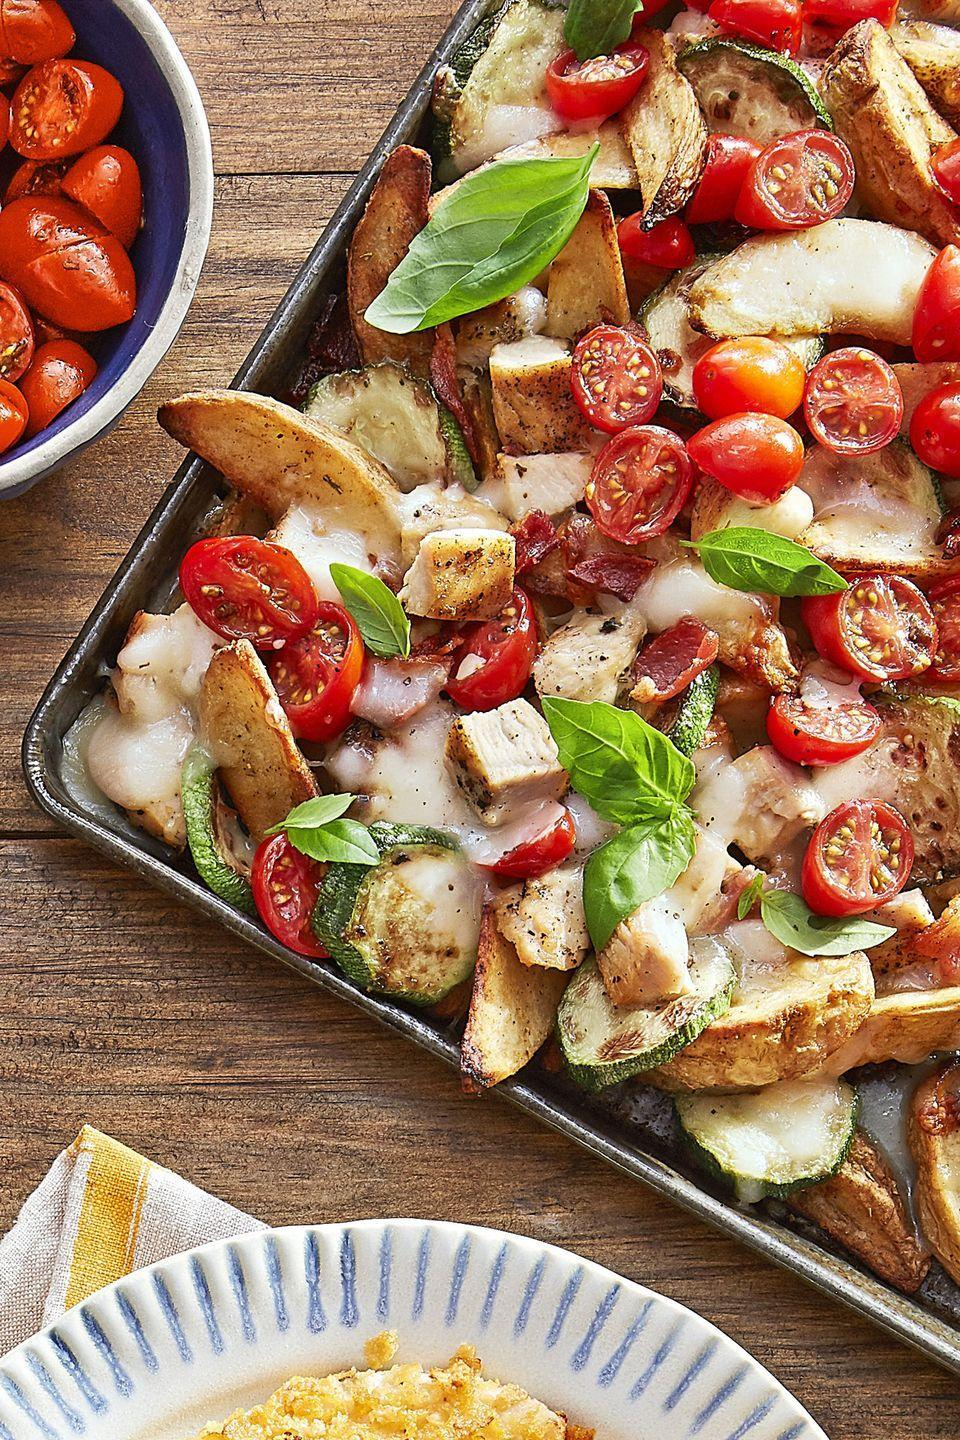 "<p>Move over tortilla chips, potato wedges and chicken are the new go-to nacho base.</p><p><strong><a href=""https://www.countryliving.com/food-drinks/recipes/a44281/italian-potato-wedge-nachos-recipe/"" rel=""nofollow noopener"" target=""_blank"" data-ylk=""slk:Get the recipe."" class=""link rapid-noclick-resp"">Get the recipe.</a></strong><br></p><p><a class=""link rapid-noclick-resp"" href=""https://www.amazon.com/Bellemain-Heavy-Duty-Aluminum-Sheet/dp/B01AGQ027S?tag=syn-yahoo-20&ascsubtag=%5Bartid%7C10050.g.680%5Bsrc%7Cyahoo-us"" rel=""nofollow noopener"" target=""_blank"" data-ylk=""slk:SHOP BAKING SHEETS"">SHOP BAKING SHEETS</a> </p>"